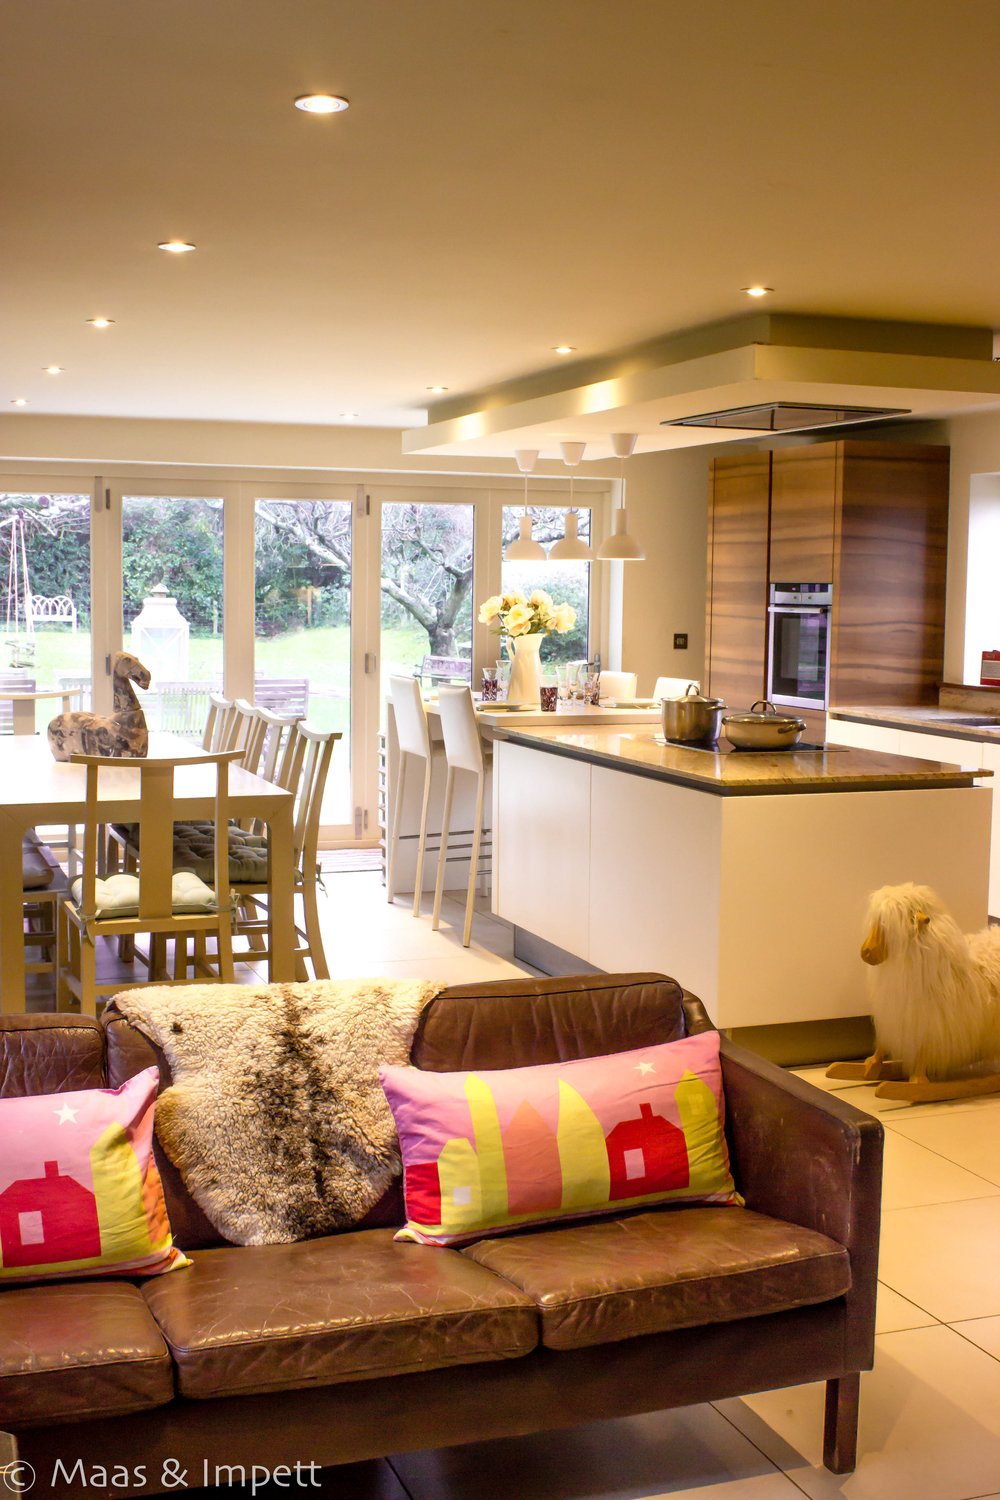 TRADITIONAL COUNTRY INTERIOR DESIGN, HAMPSHIRE